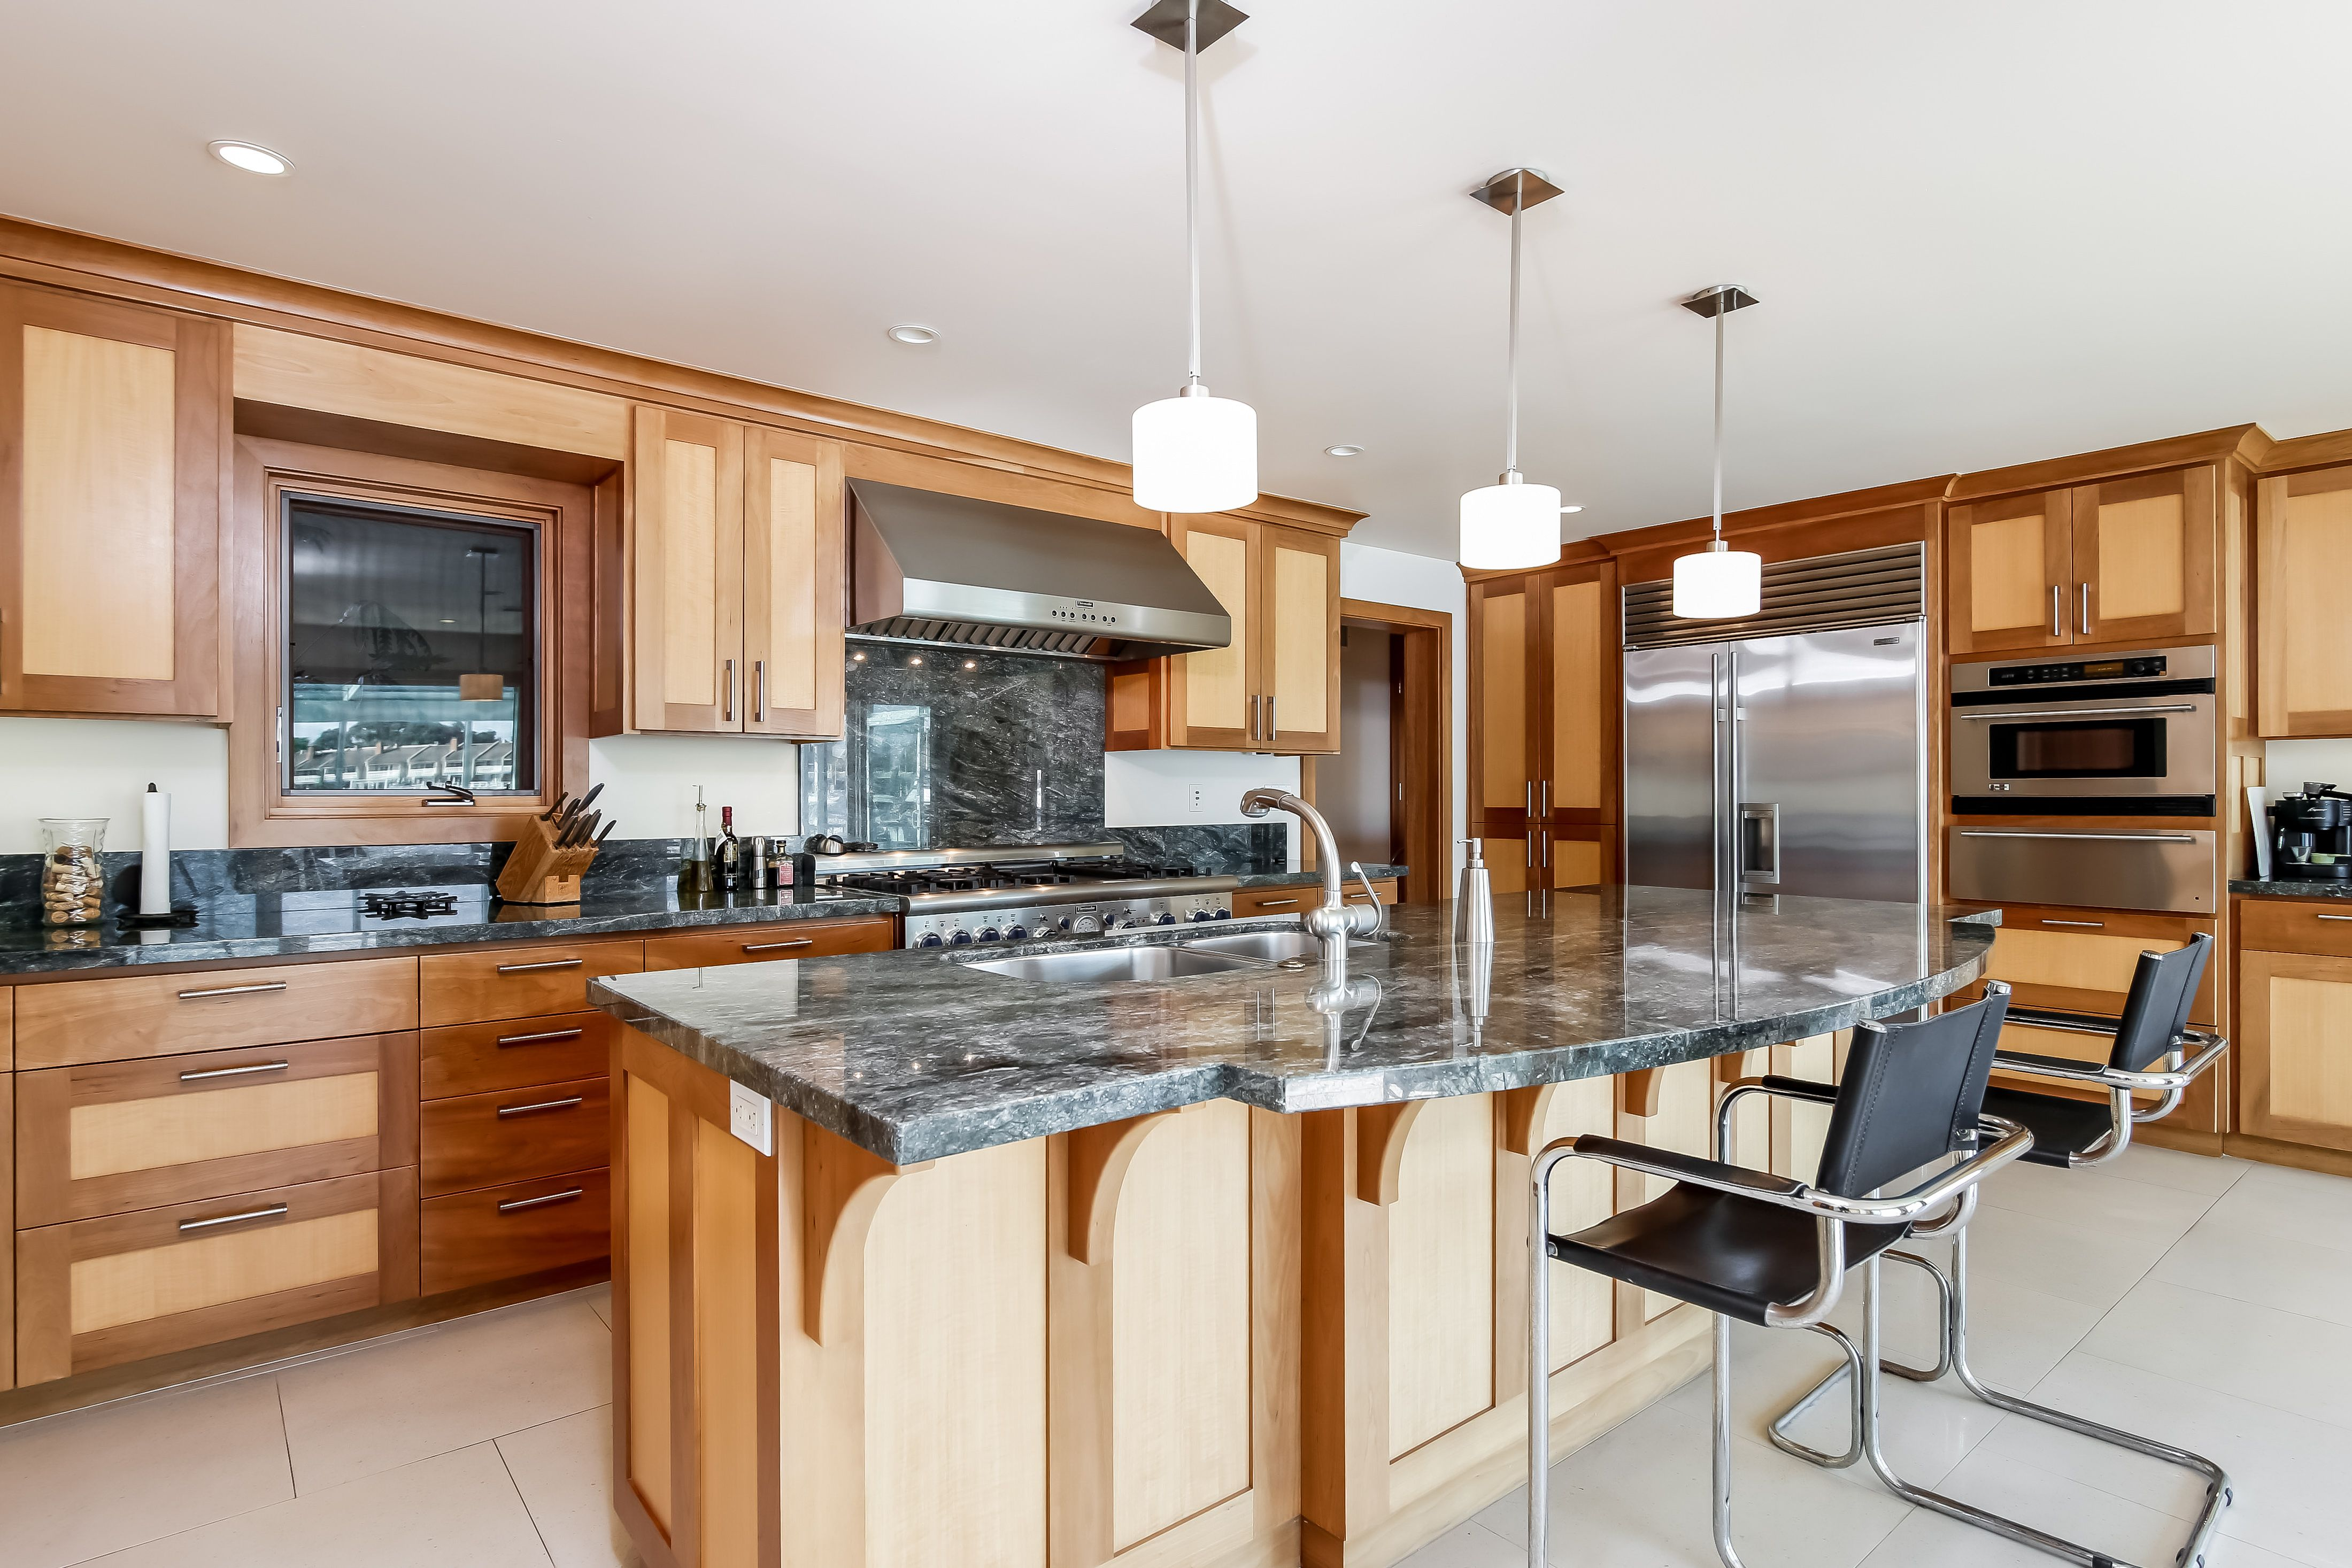 extra large state of the art kitchen with top of the line appliances huntington kitchen on kitchen appliances id=14197